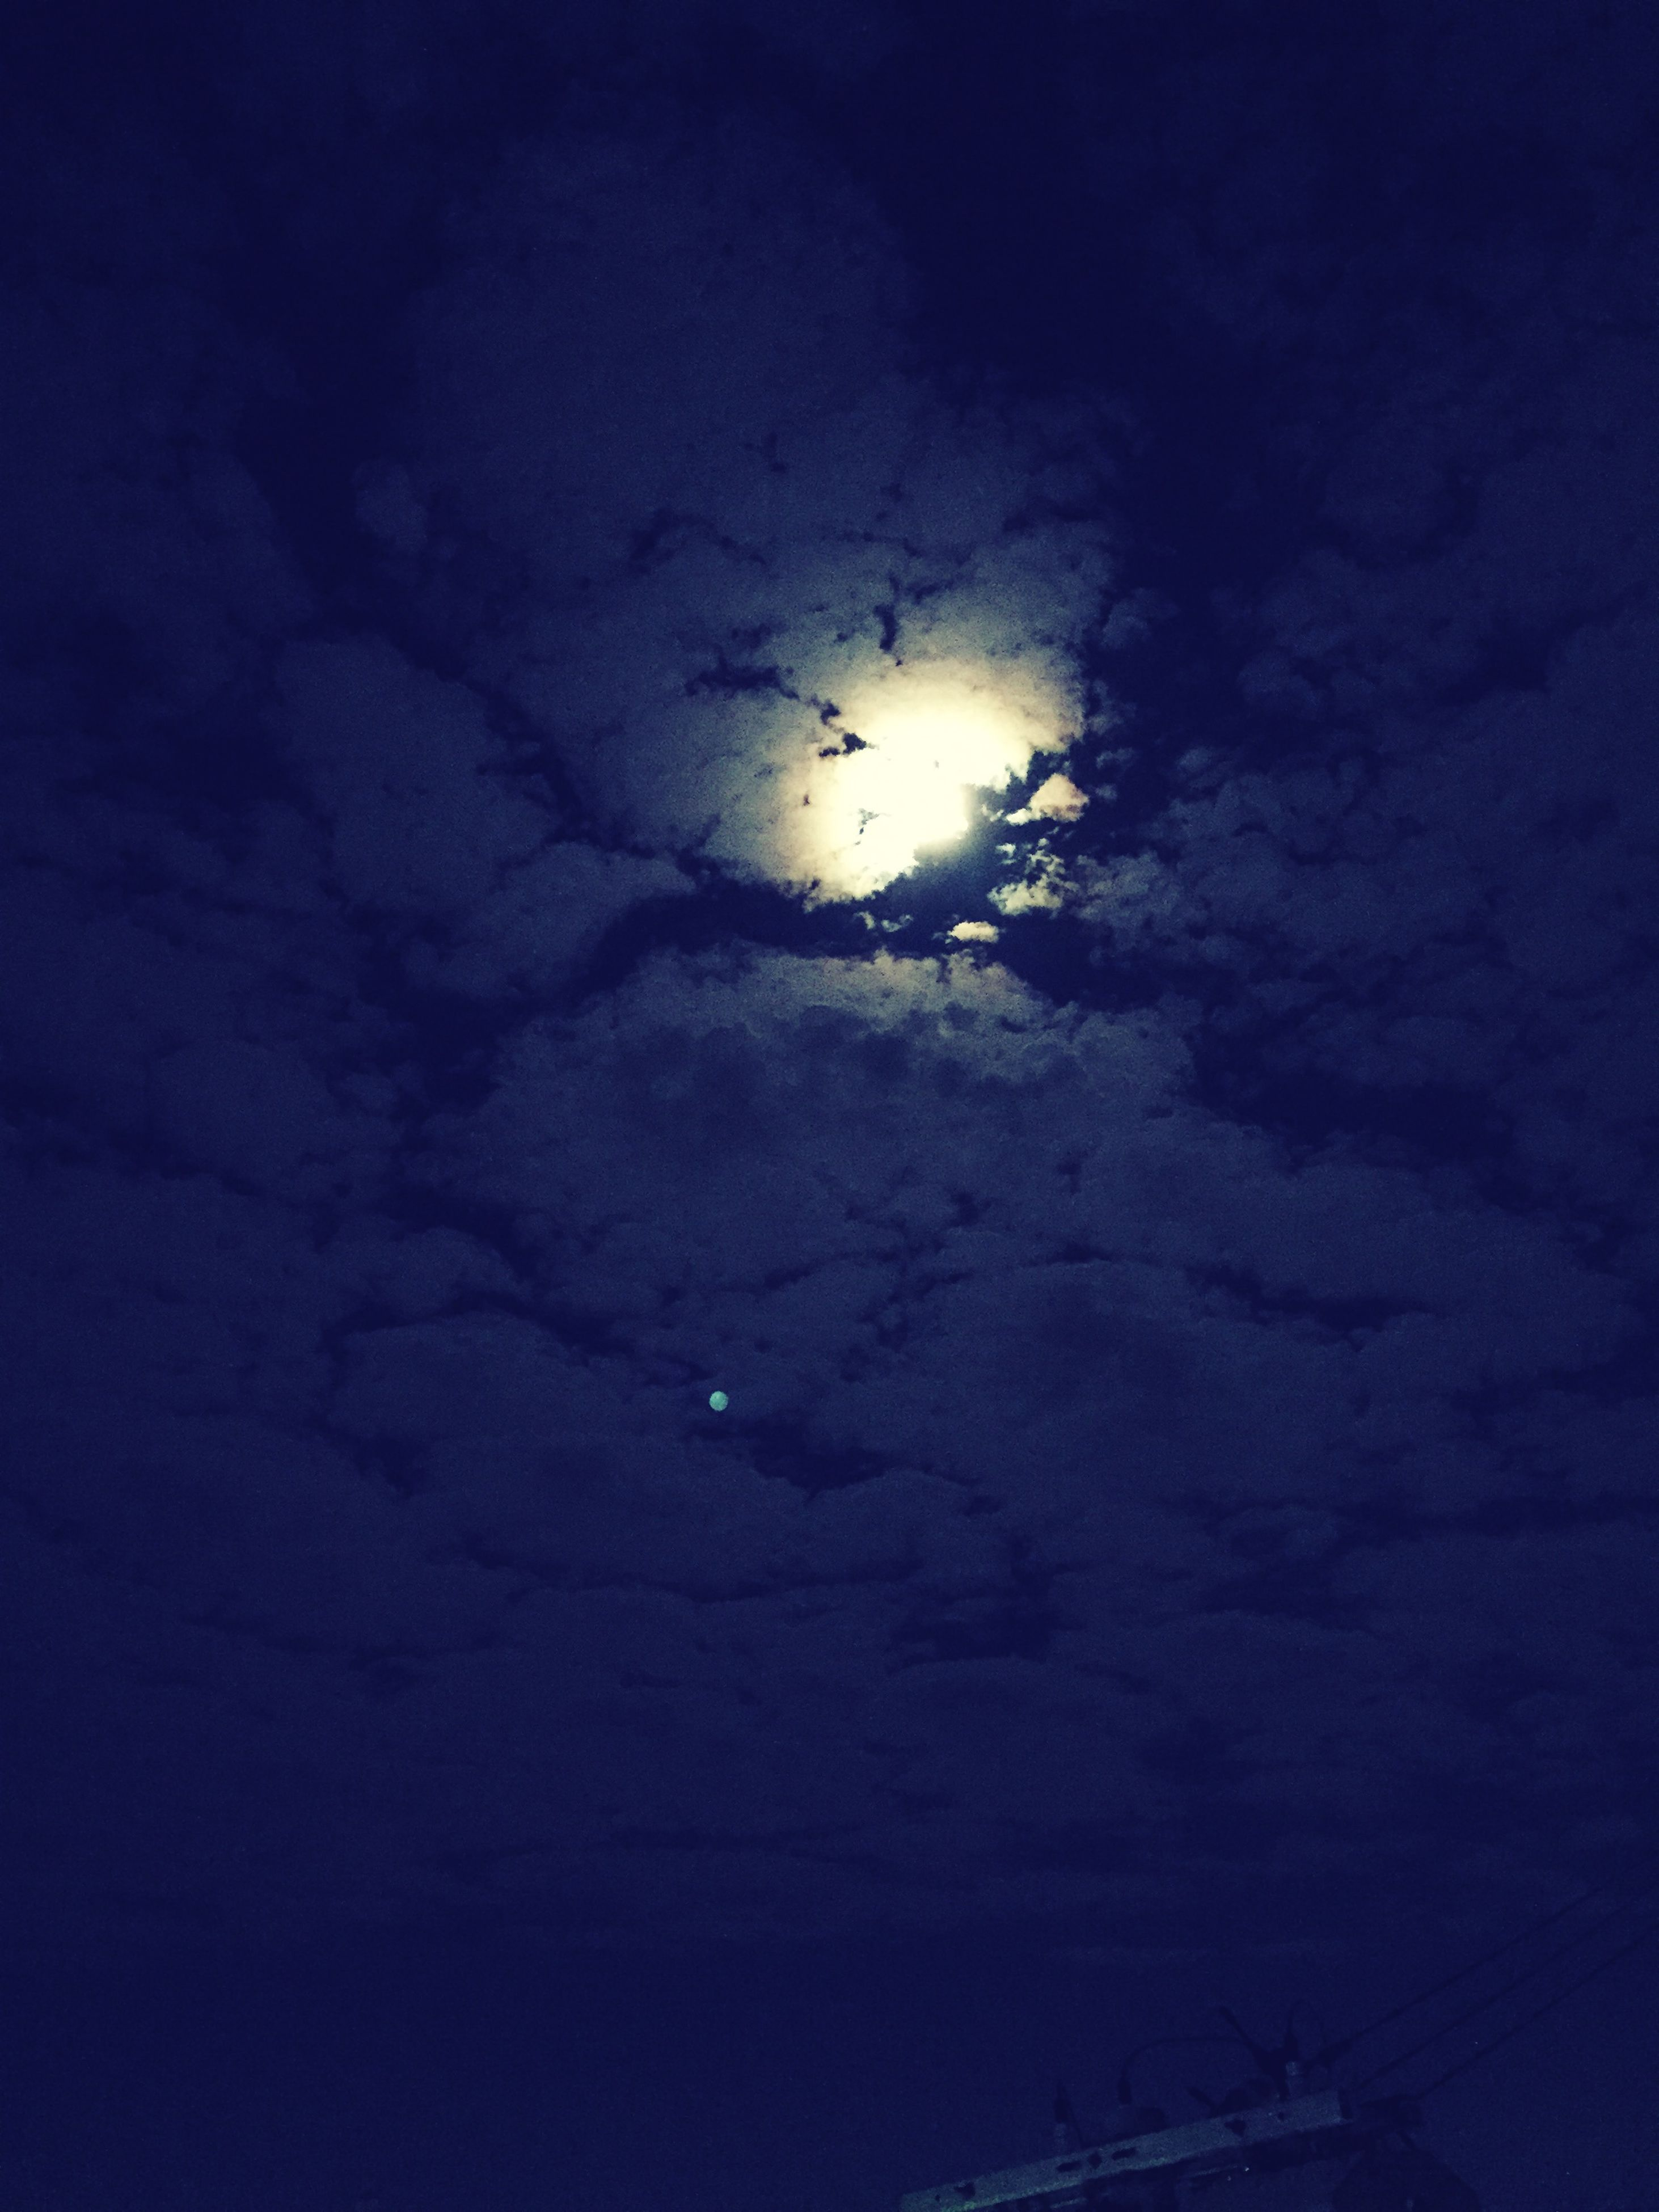 sky, night, weather, beauty in nature, scenics, tranquility, nature, tranquil scene, cloud - sky, water, low angle view, astronomy, moon, idyllic, no people, backgrounds, dusk, cloudy, outdoors, star - space